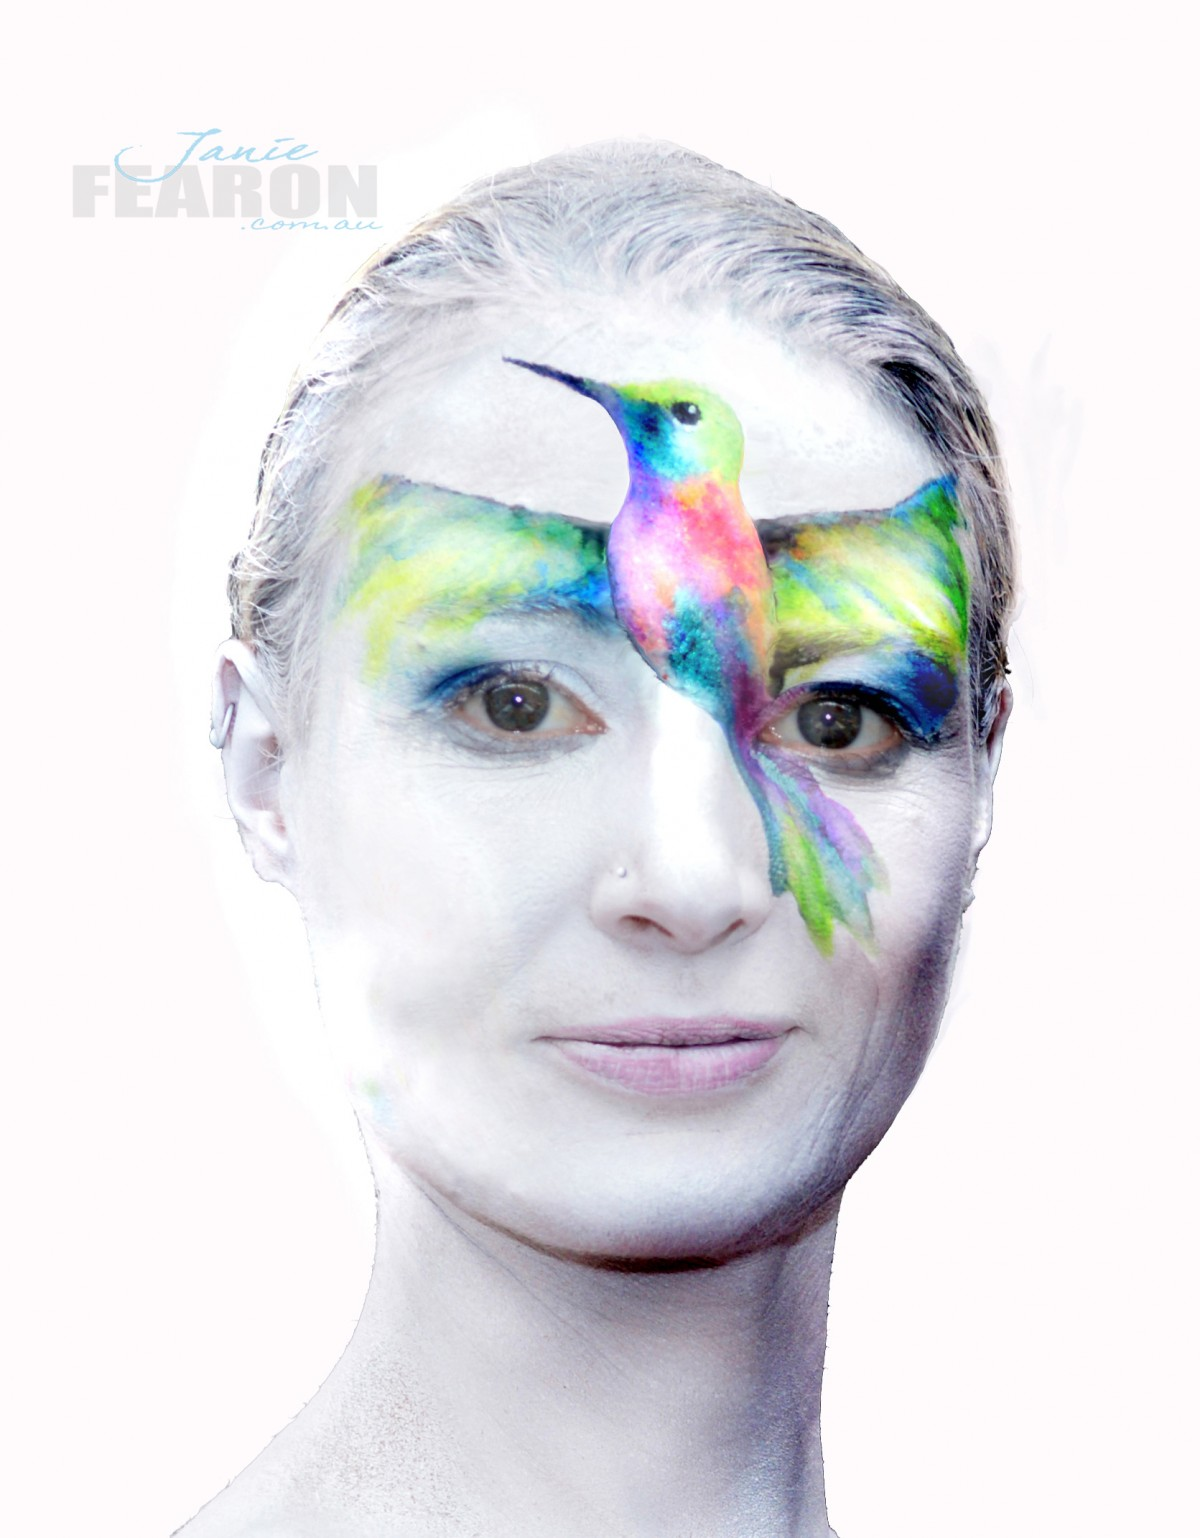 WATER COLOUR  artist Janie Fearon photo Janie Fearon model Heather Sims